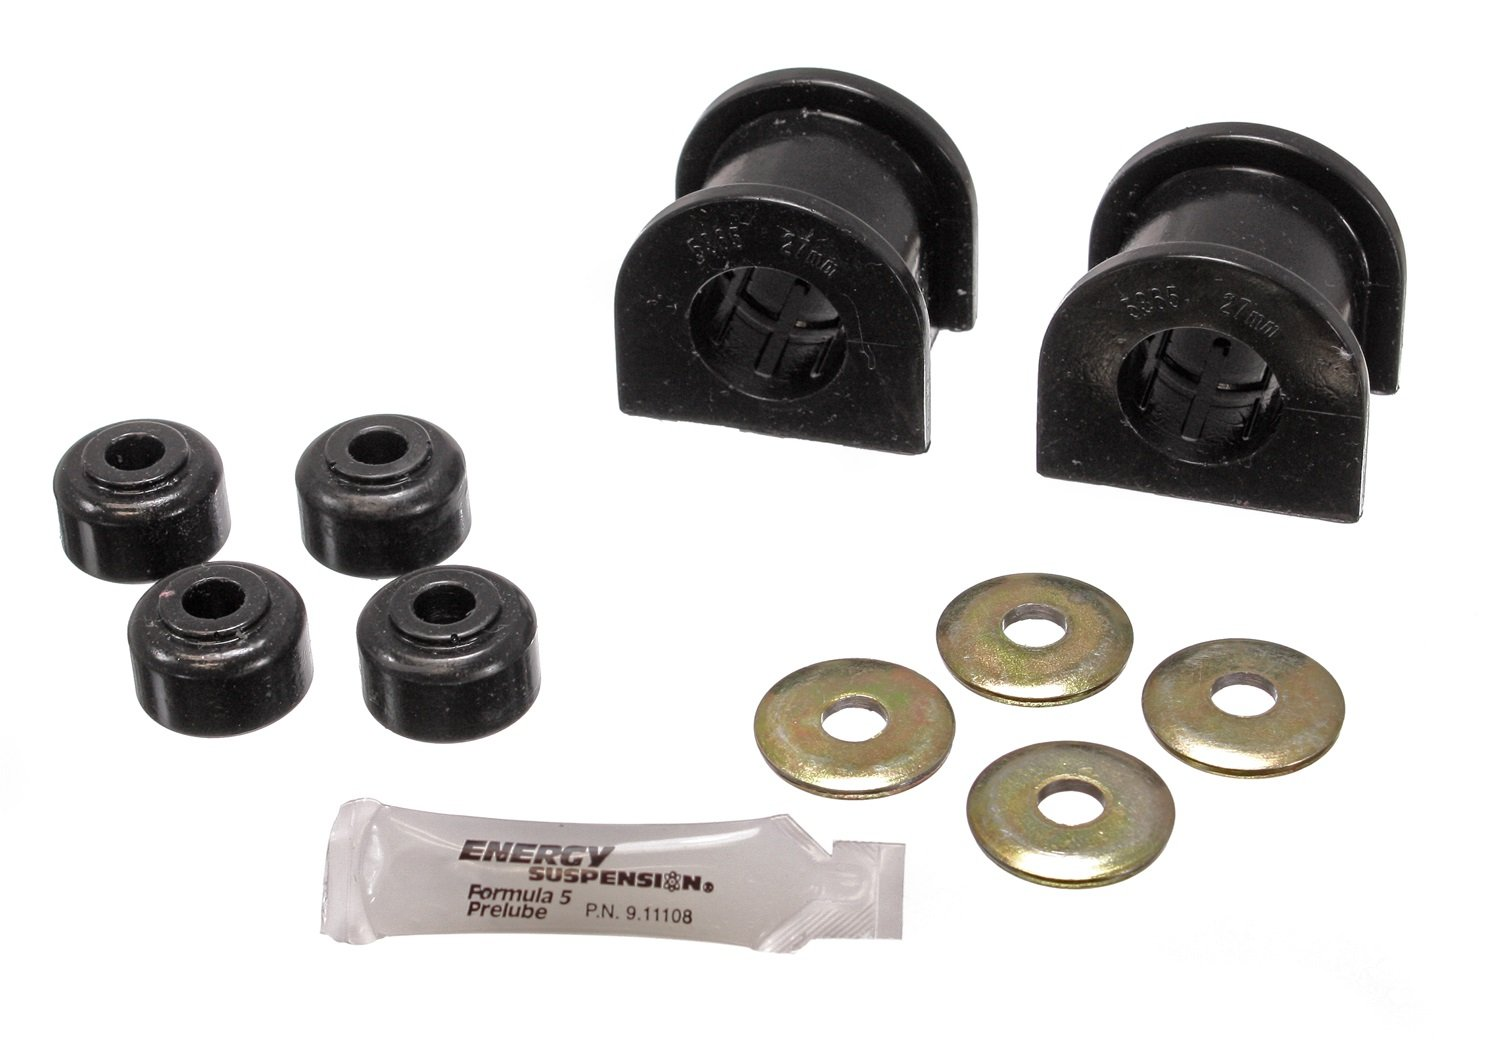 Energy Suspension 8.5118G 27mm Front Sway Bar Bushing Set for Toyota